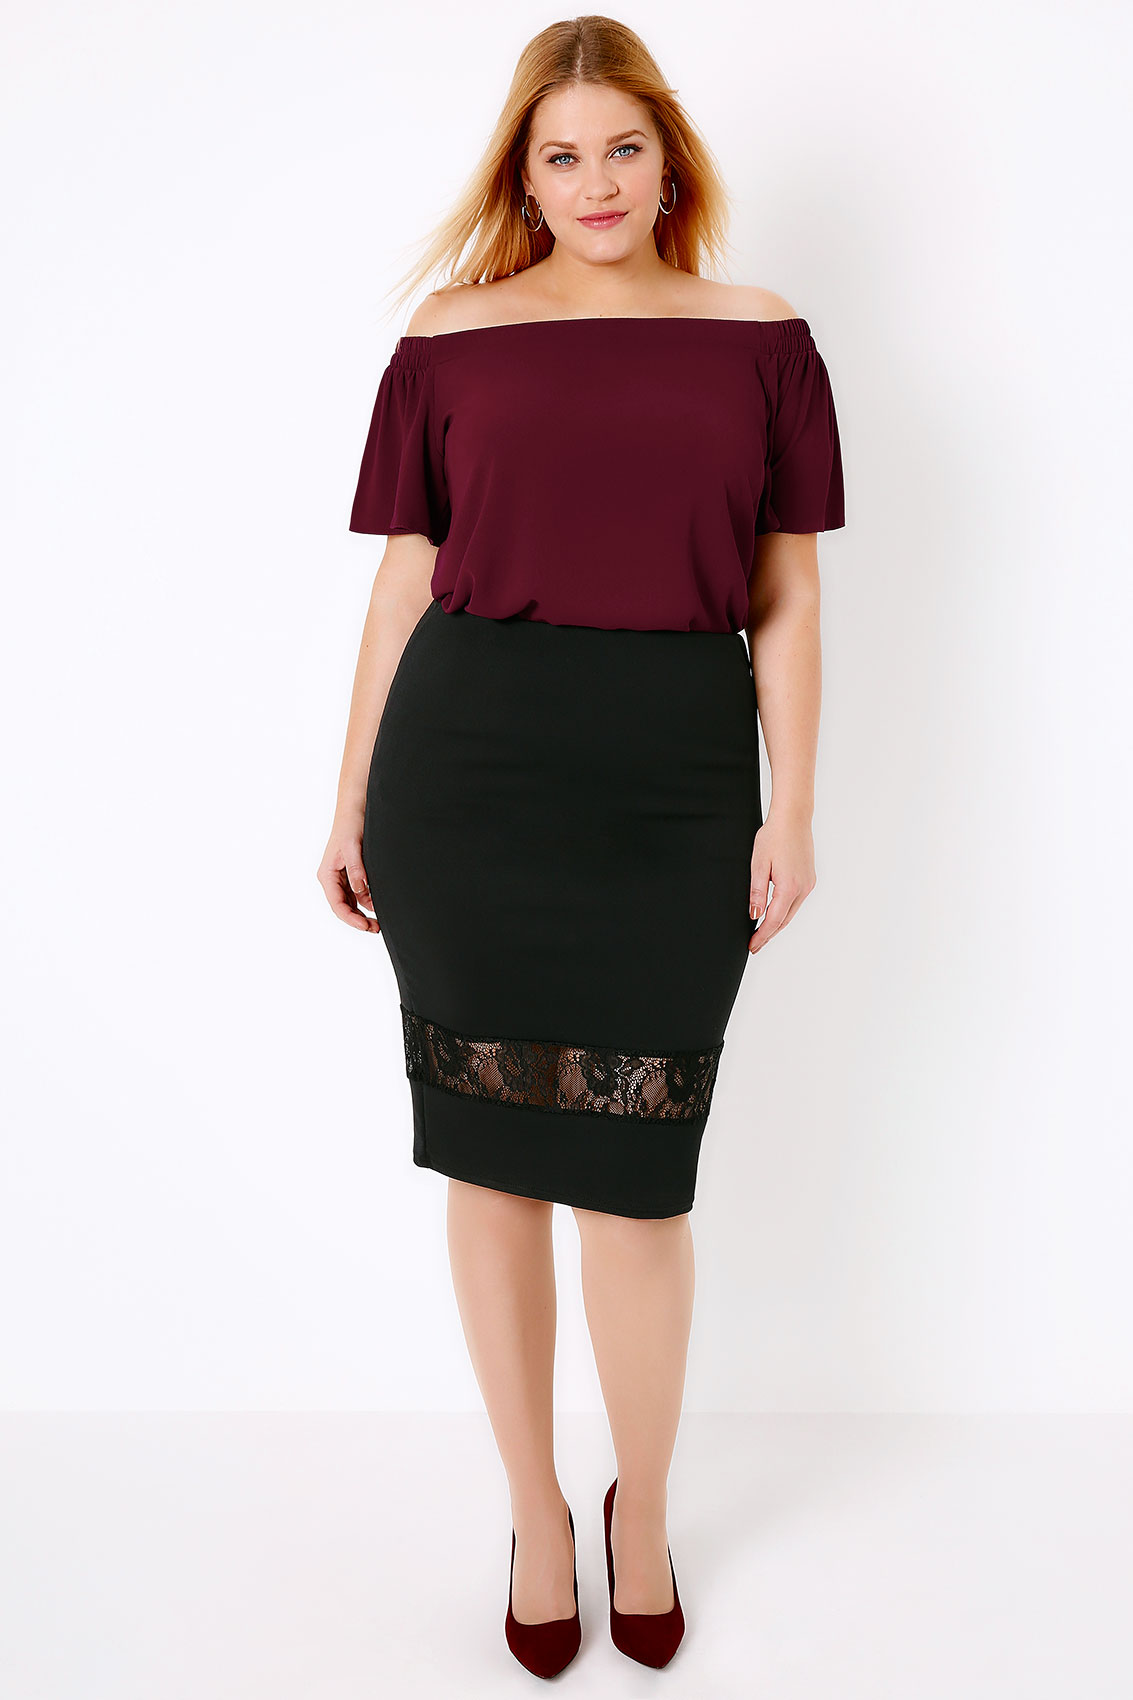 Shop women's skirts at dolcehouse.ml Discover a stylish selection of the latest brand name and designer fashions all at a great value. Plus Size Apparel. Plus 0X (W) Plus 1X (W) Plus 2X (W) Juniors Pencil Skirtall. $ compare at $25 see similar styles hide similar styles quick look. Juniors Denim Jumper. $.